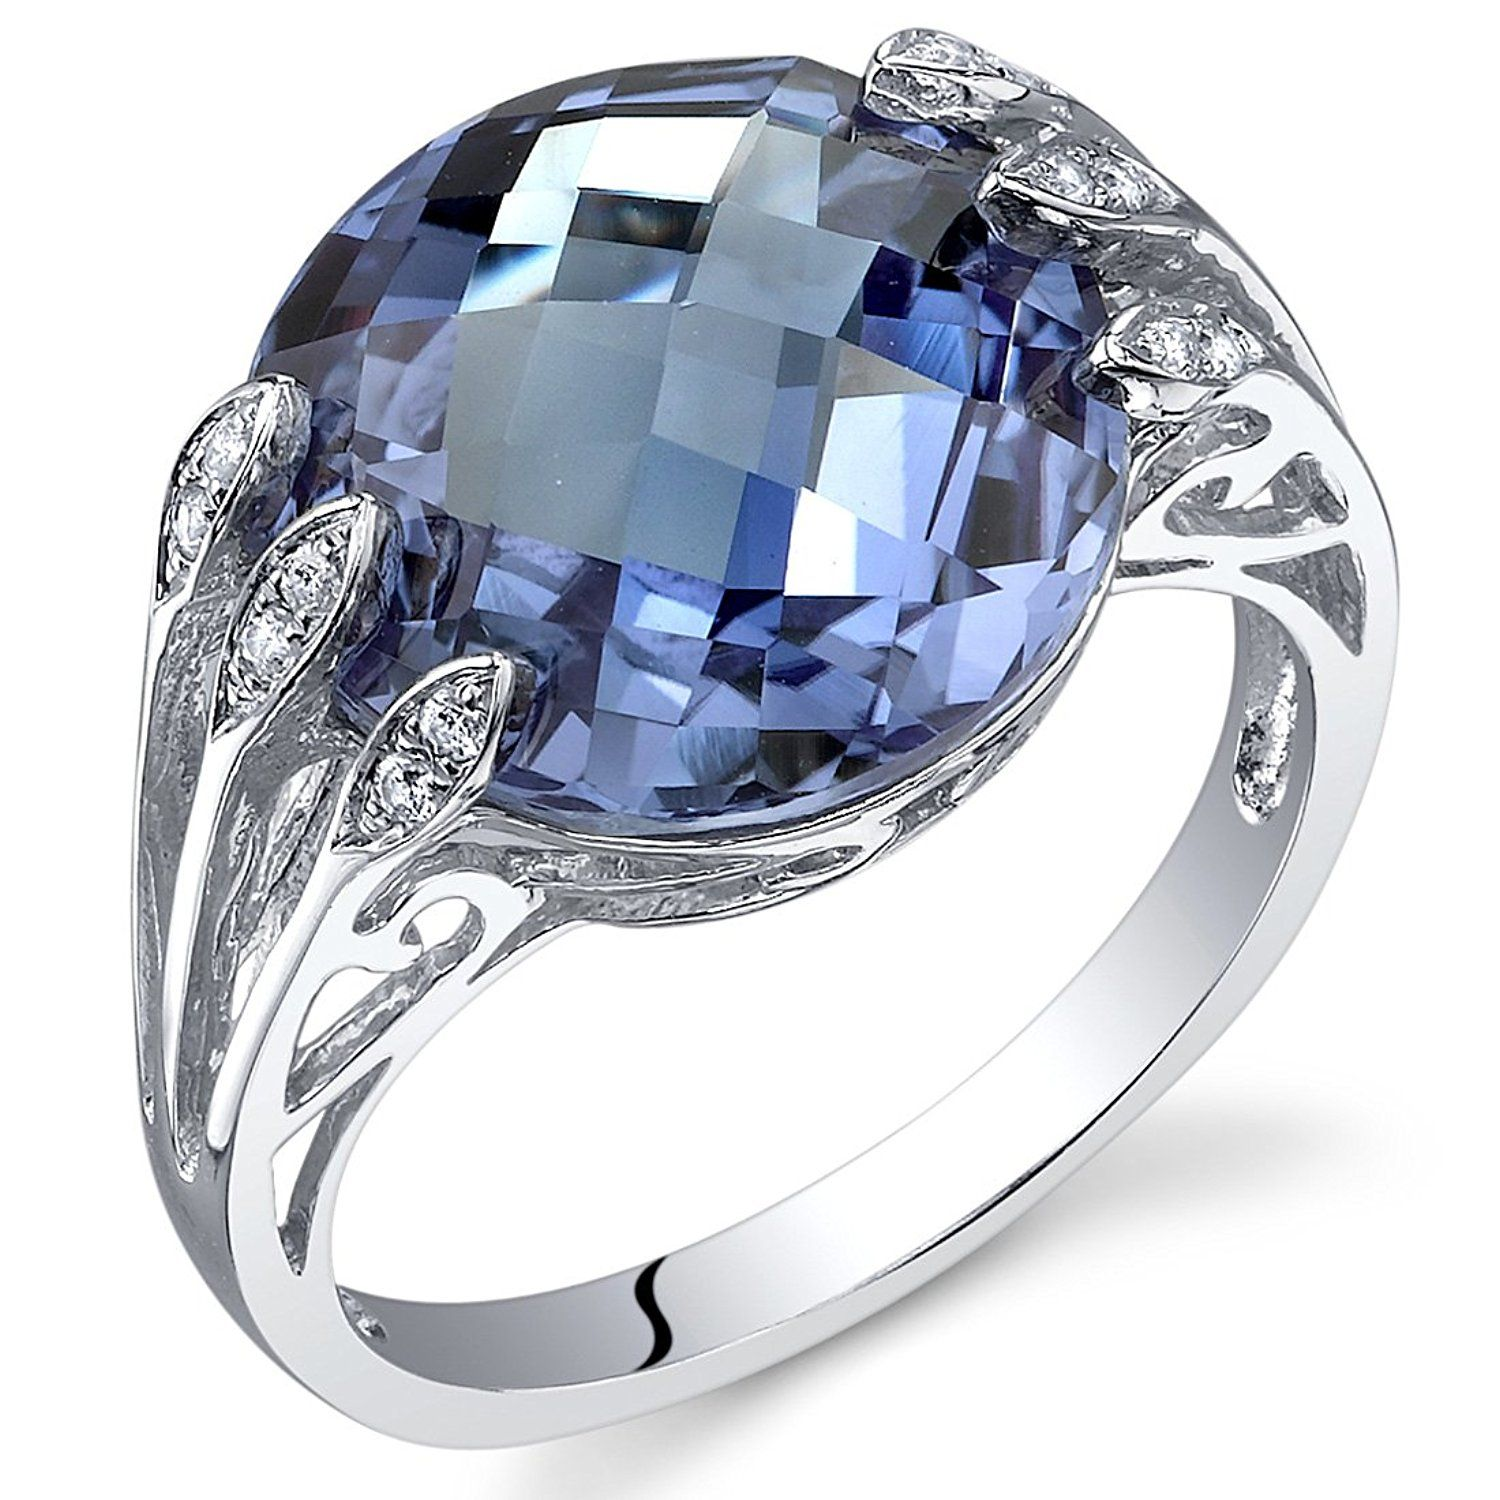 CloseoutWarehouse Heart Infinity Blend Cubic Zirconia Blue Simulated Opal 925 Sterling Silver Size 6